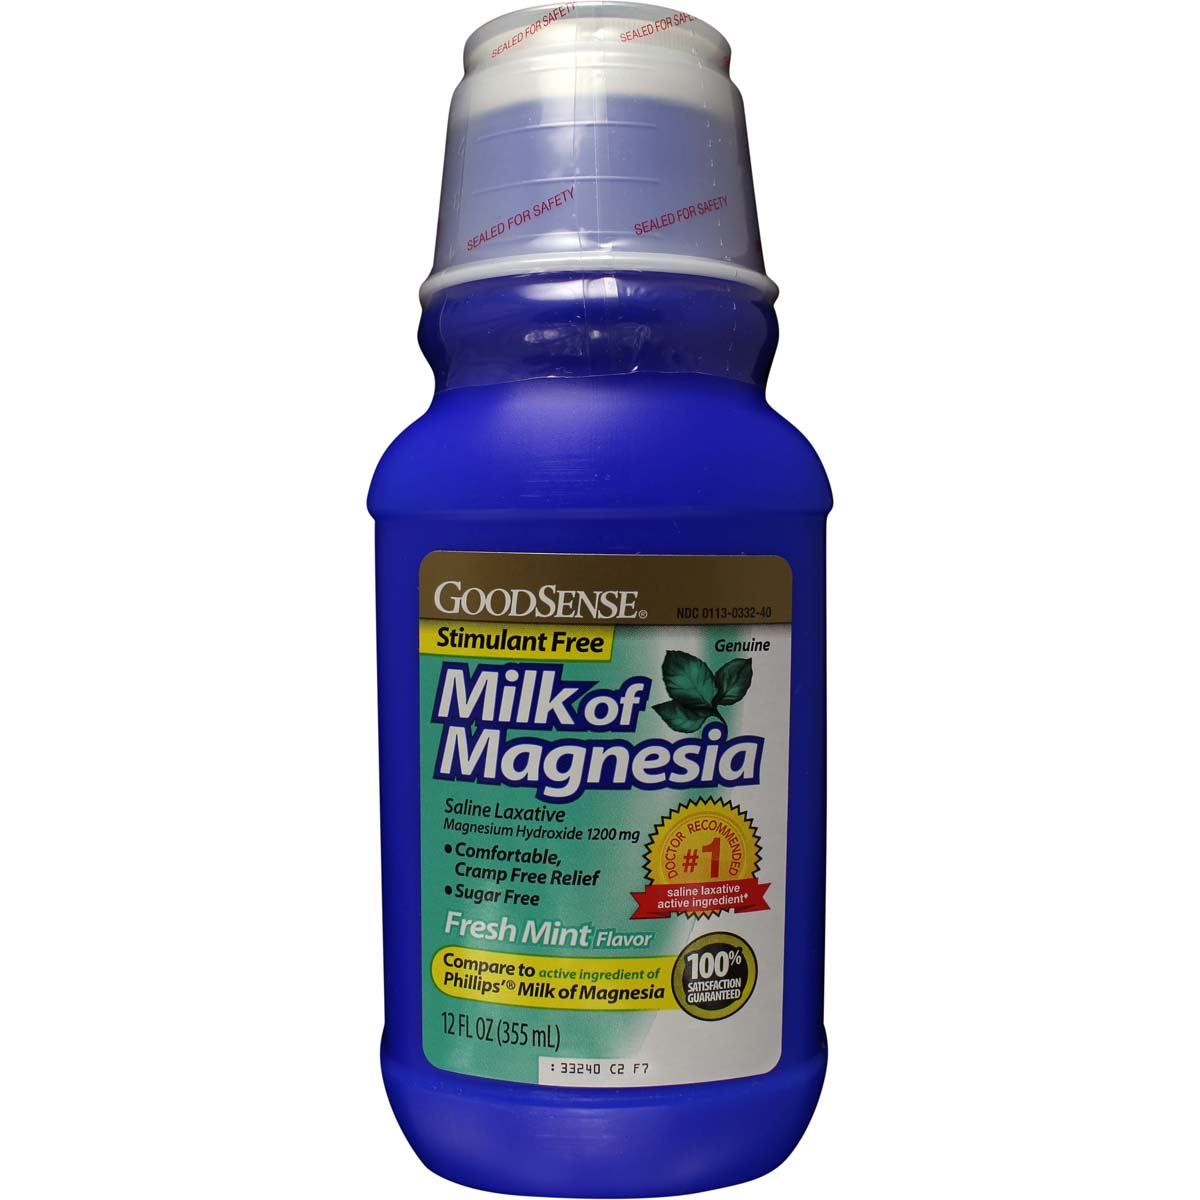 Milk of Magnesia Reviews images